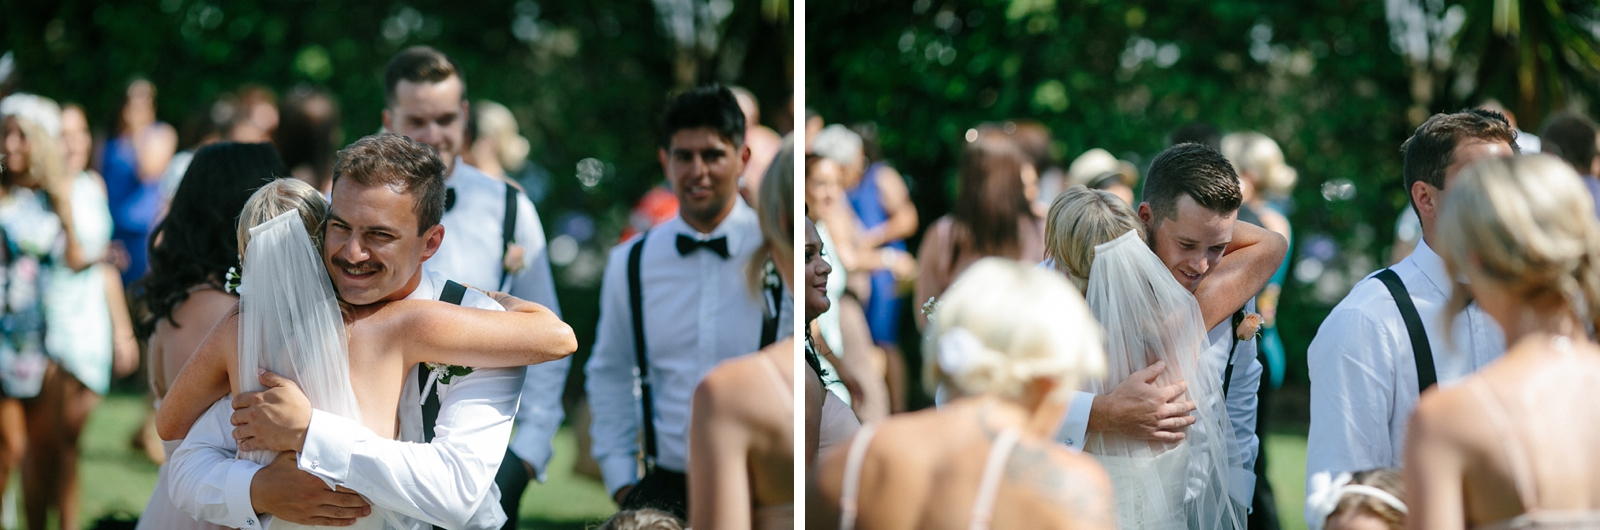 ConnorLaura_Auckland Wedding Photographer_Patty Lagera_0061.jpg